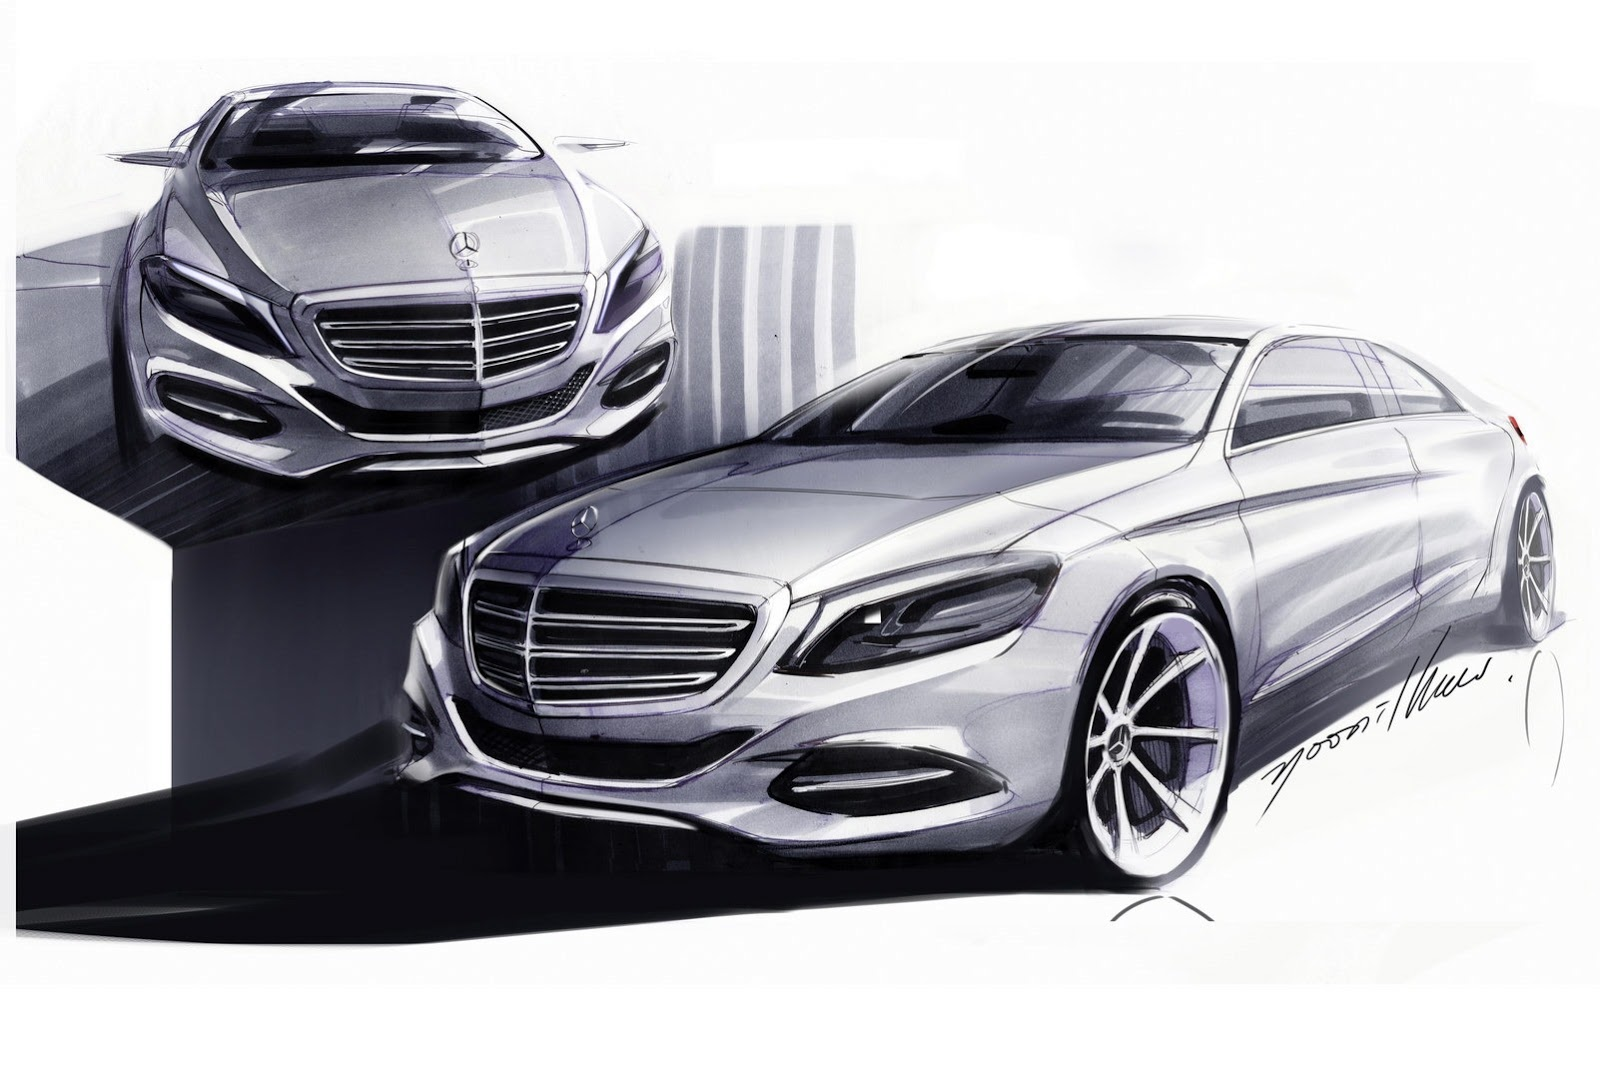 2014 Mercedes Benz S-Class Sketch - SMADE MEDIA (6)